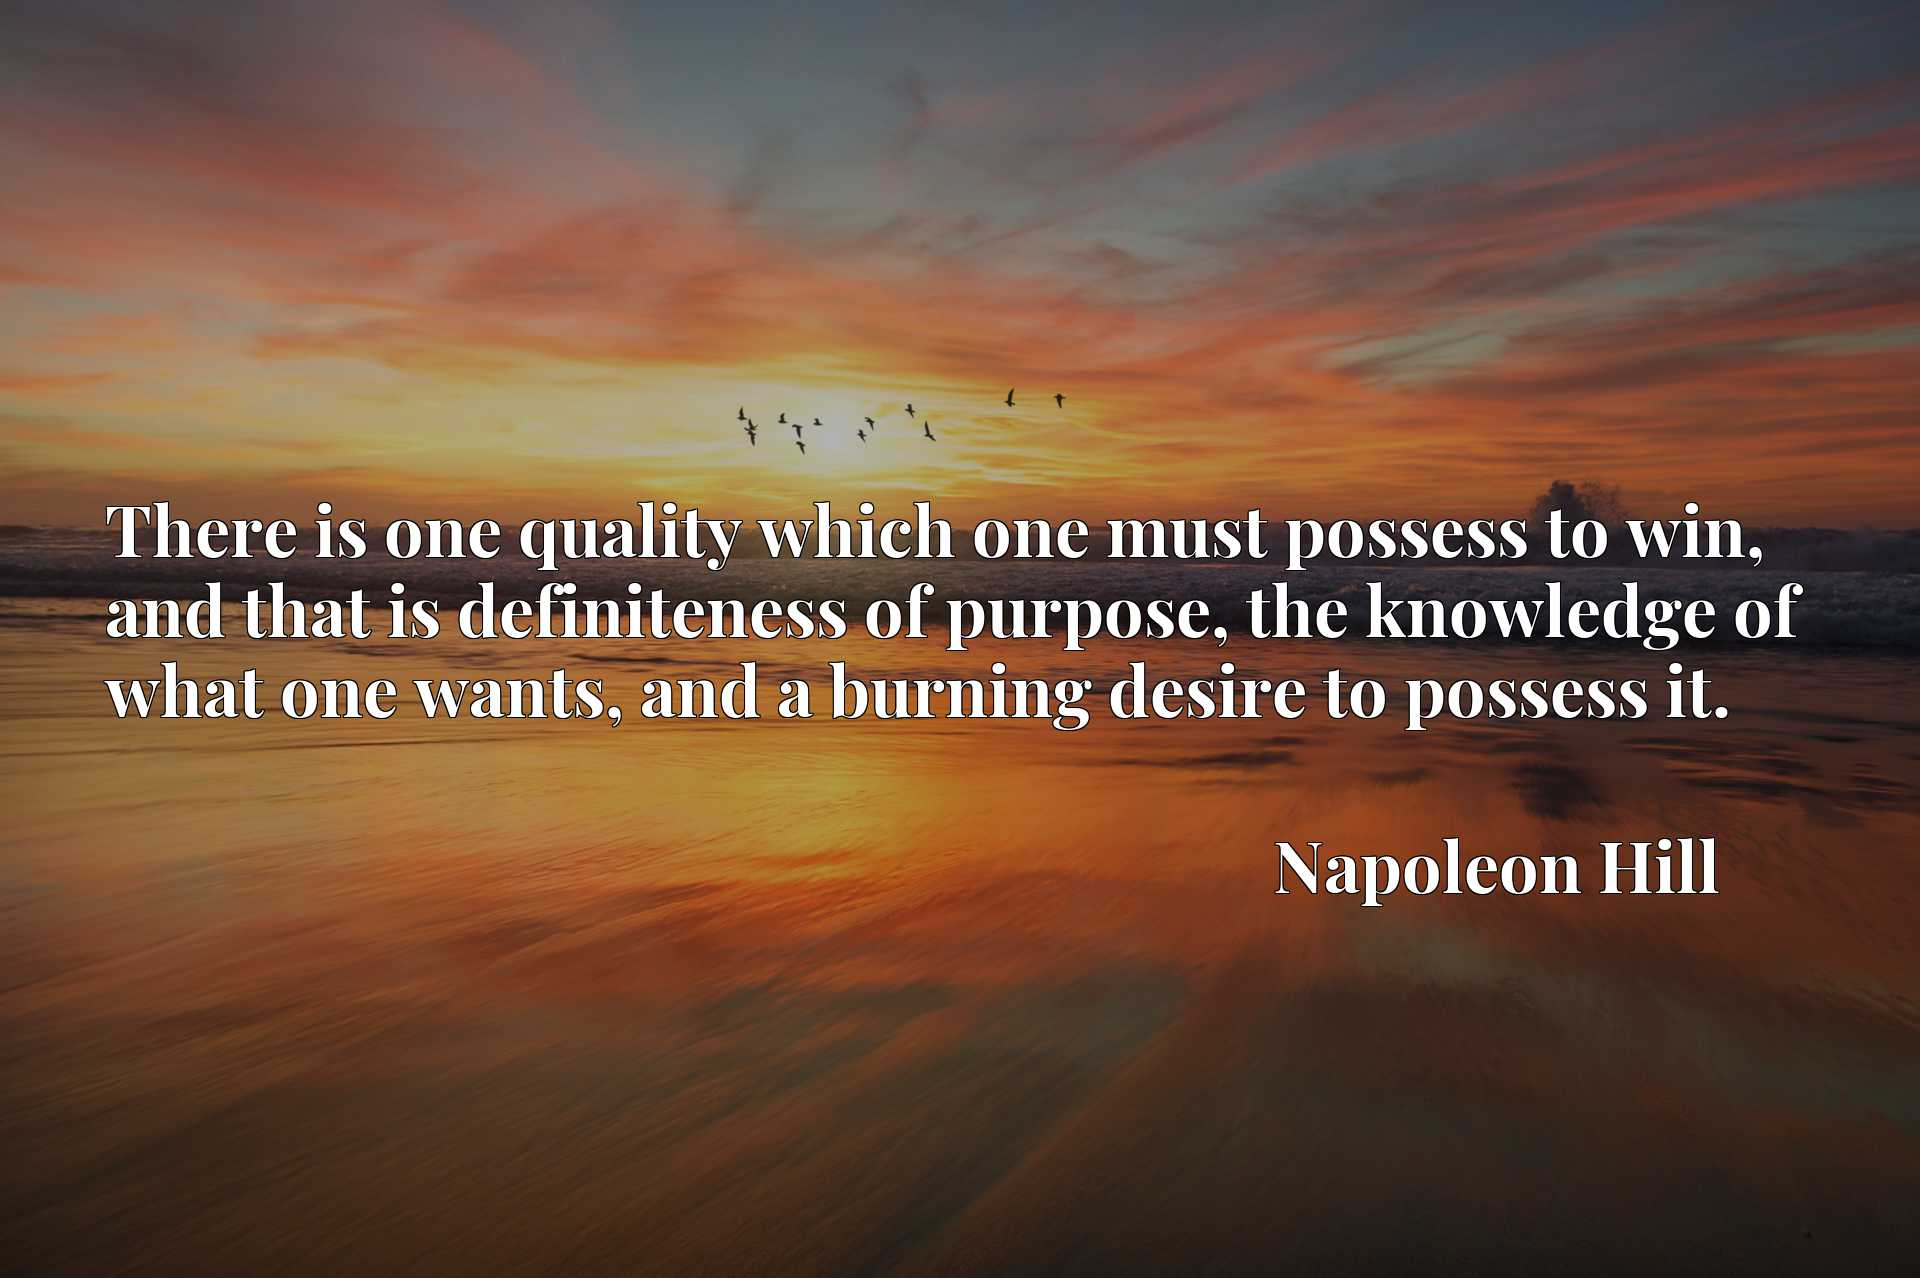 There is one quality which one must possess to win, and that is definiteness of purpose, the knowledge of what one wants, and a burning desire to possess it.